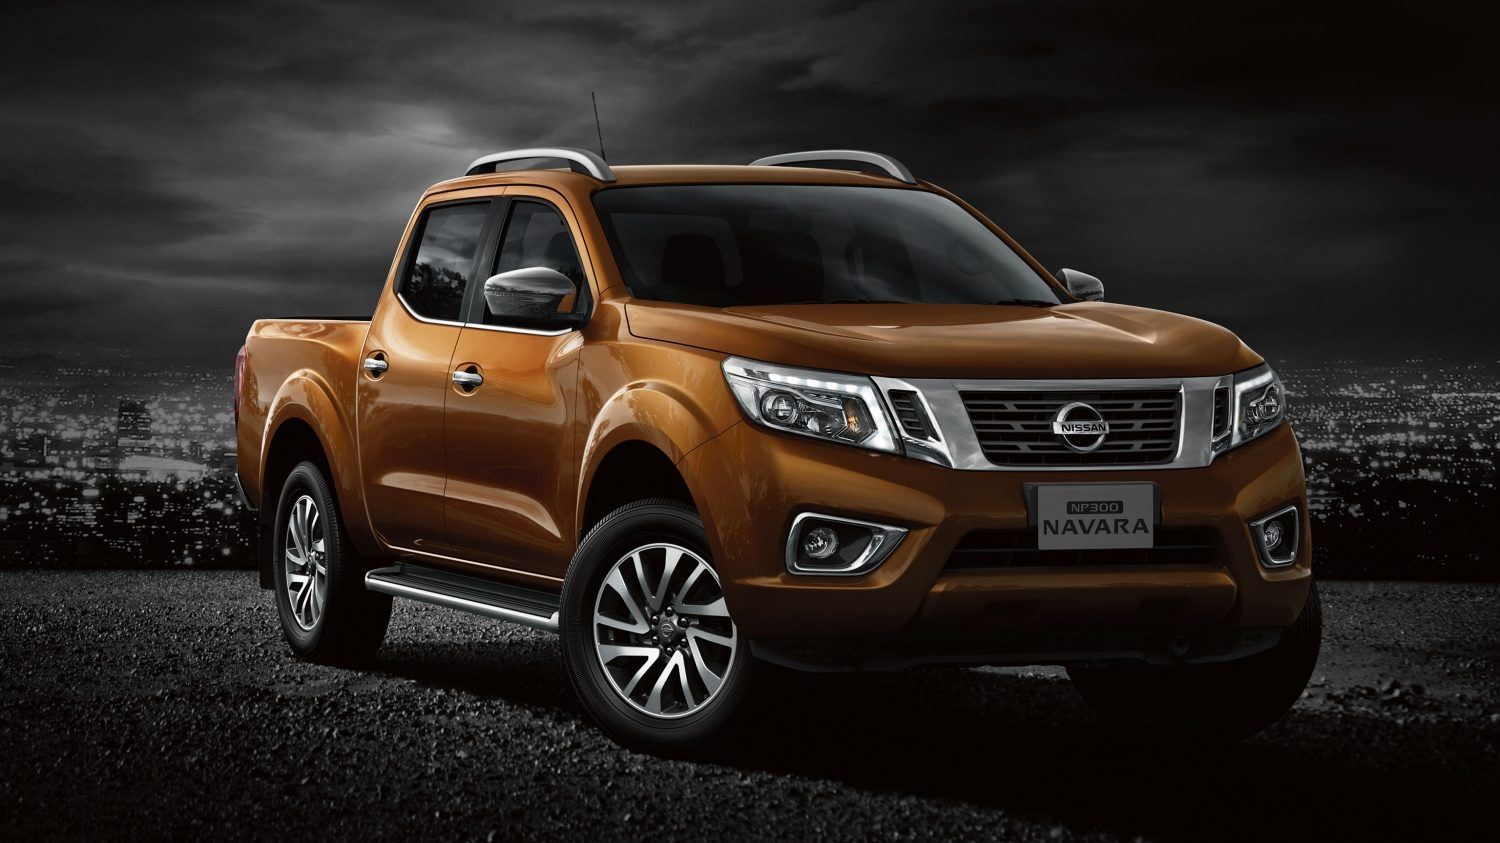 Nissan NP300 Navara - The next generation of 4x4 pick-up